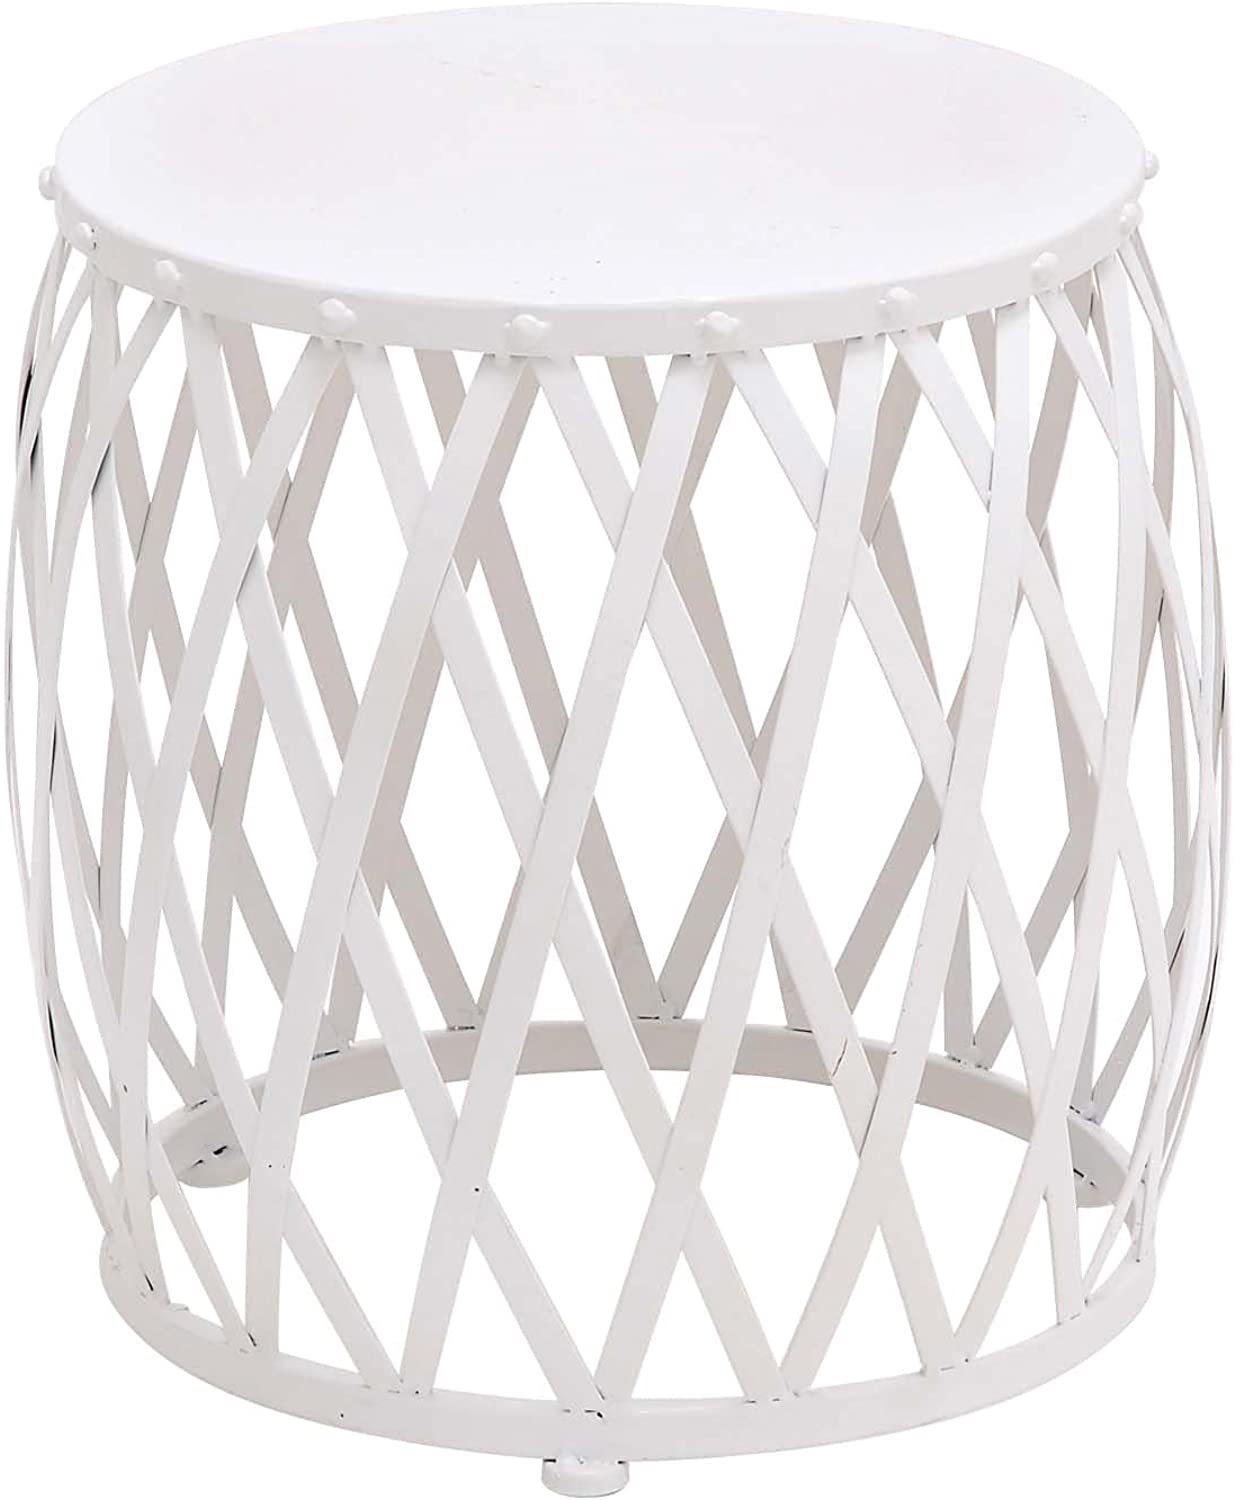 Benzara The Angelic Metal Accent Table, 19 by 19 by 19-Inch, Off-White